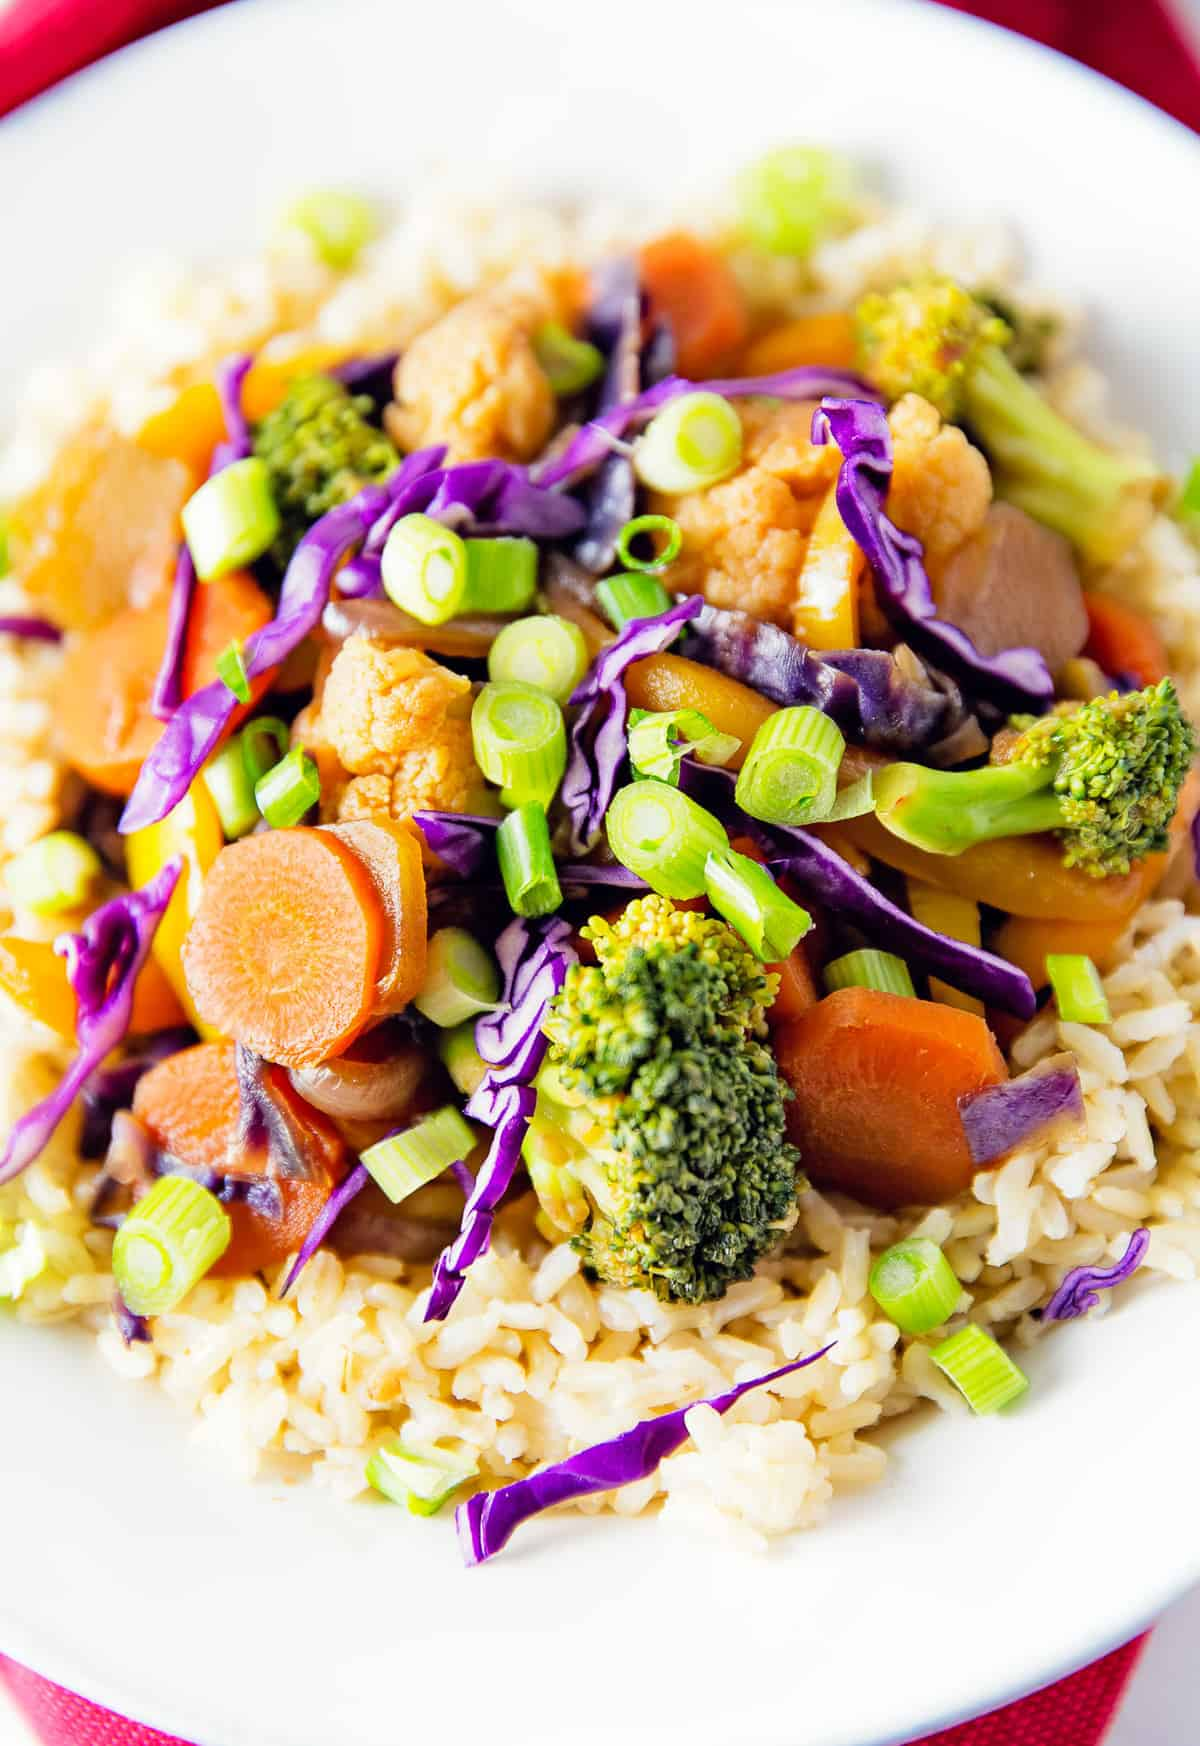 Thai stir fry monkey and me kitchen adventures thai stir fry asian broccoli cauliflower carrots rice vegan forumfinder Image collections